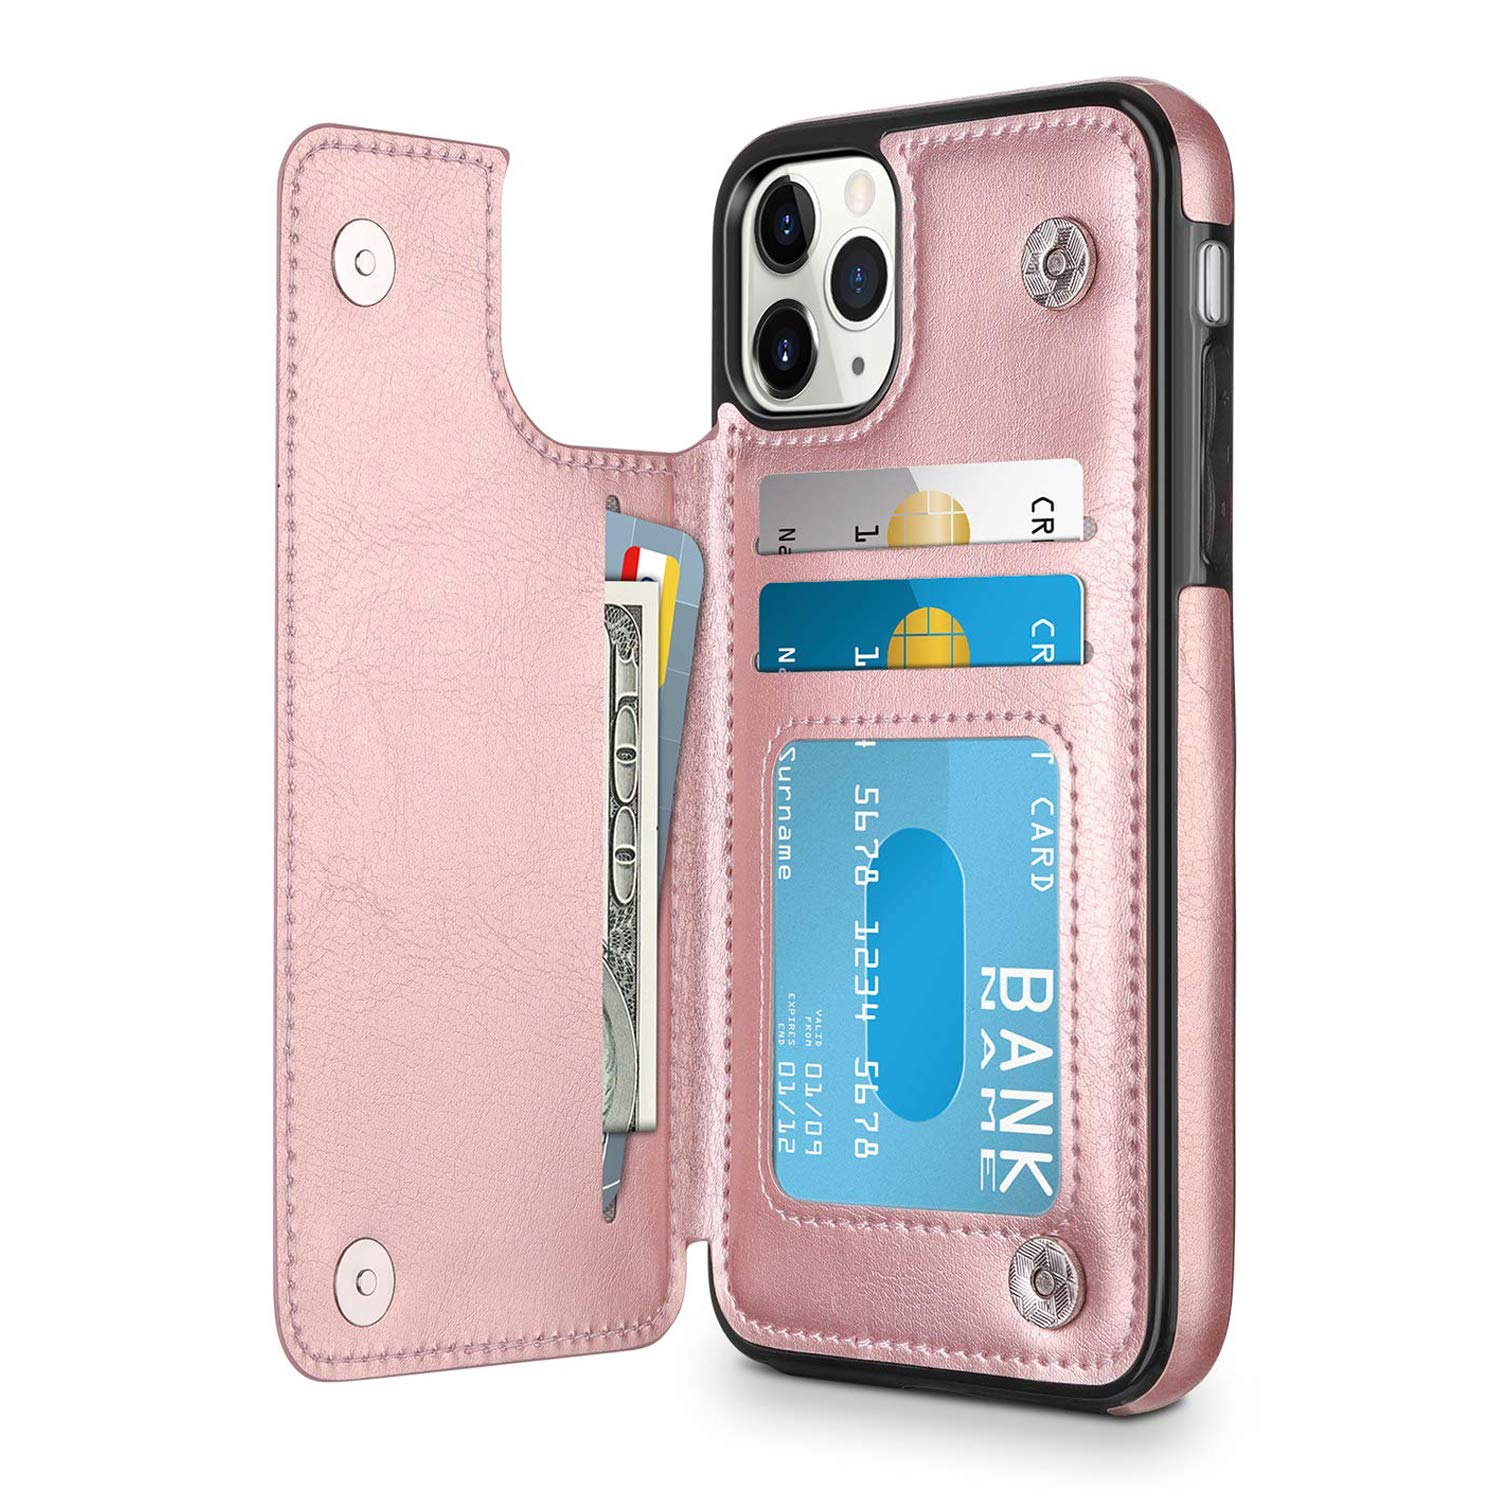 Oihxsetx Wallet Case for iPhone 11 Pro with Credit Card Holder, Premium PU Leather Card Slots, Protective Flip Folio Cover Compatible with iPhone 11 Pro - Rose Gold by Oihxsetx